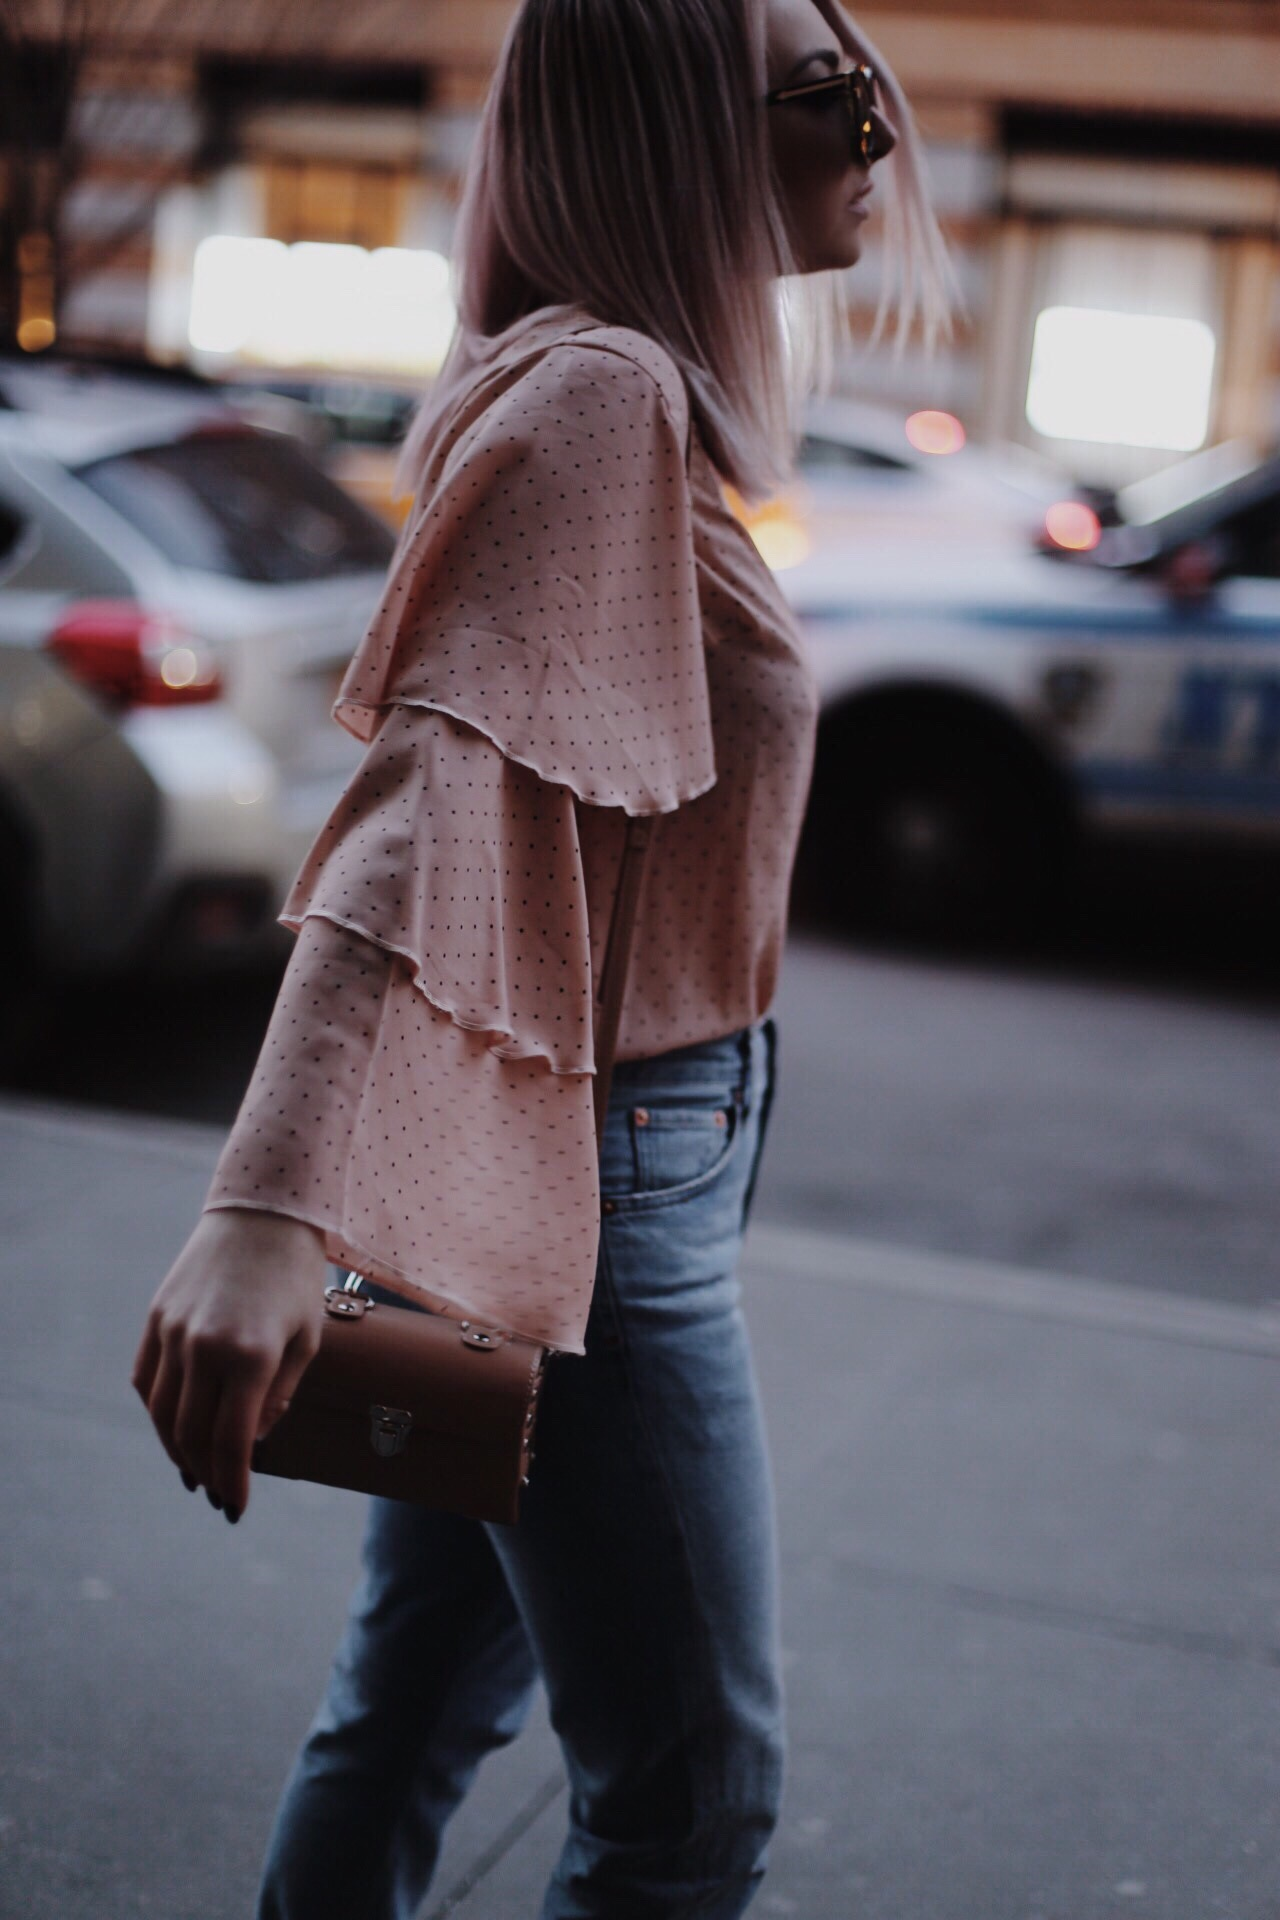 THE STATEMENT BLOUSE.